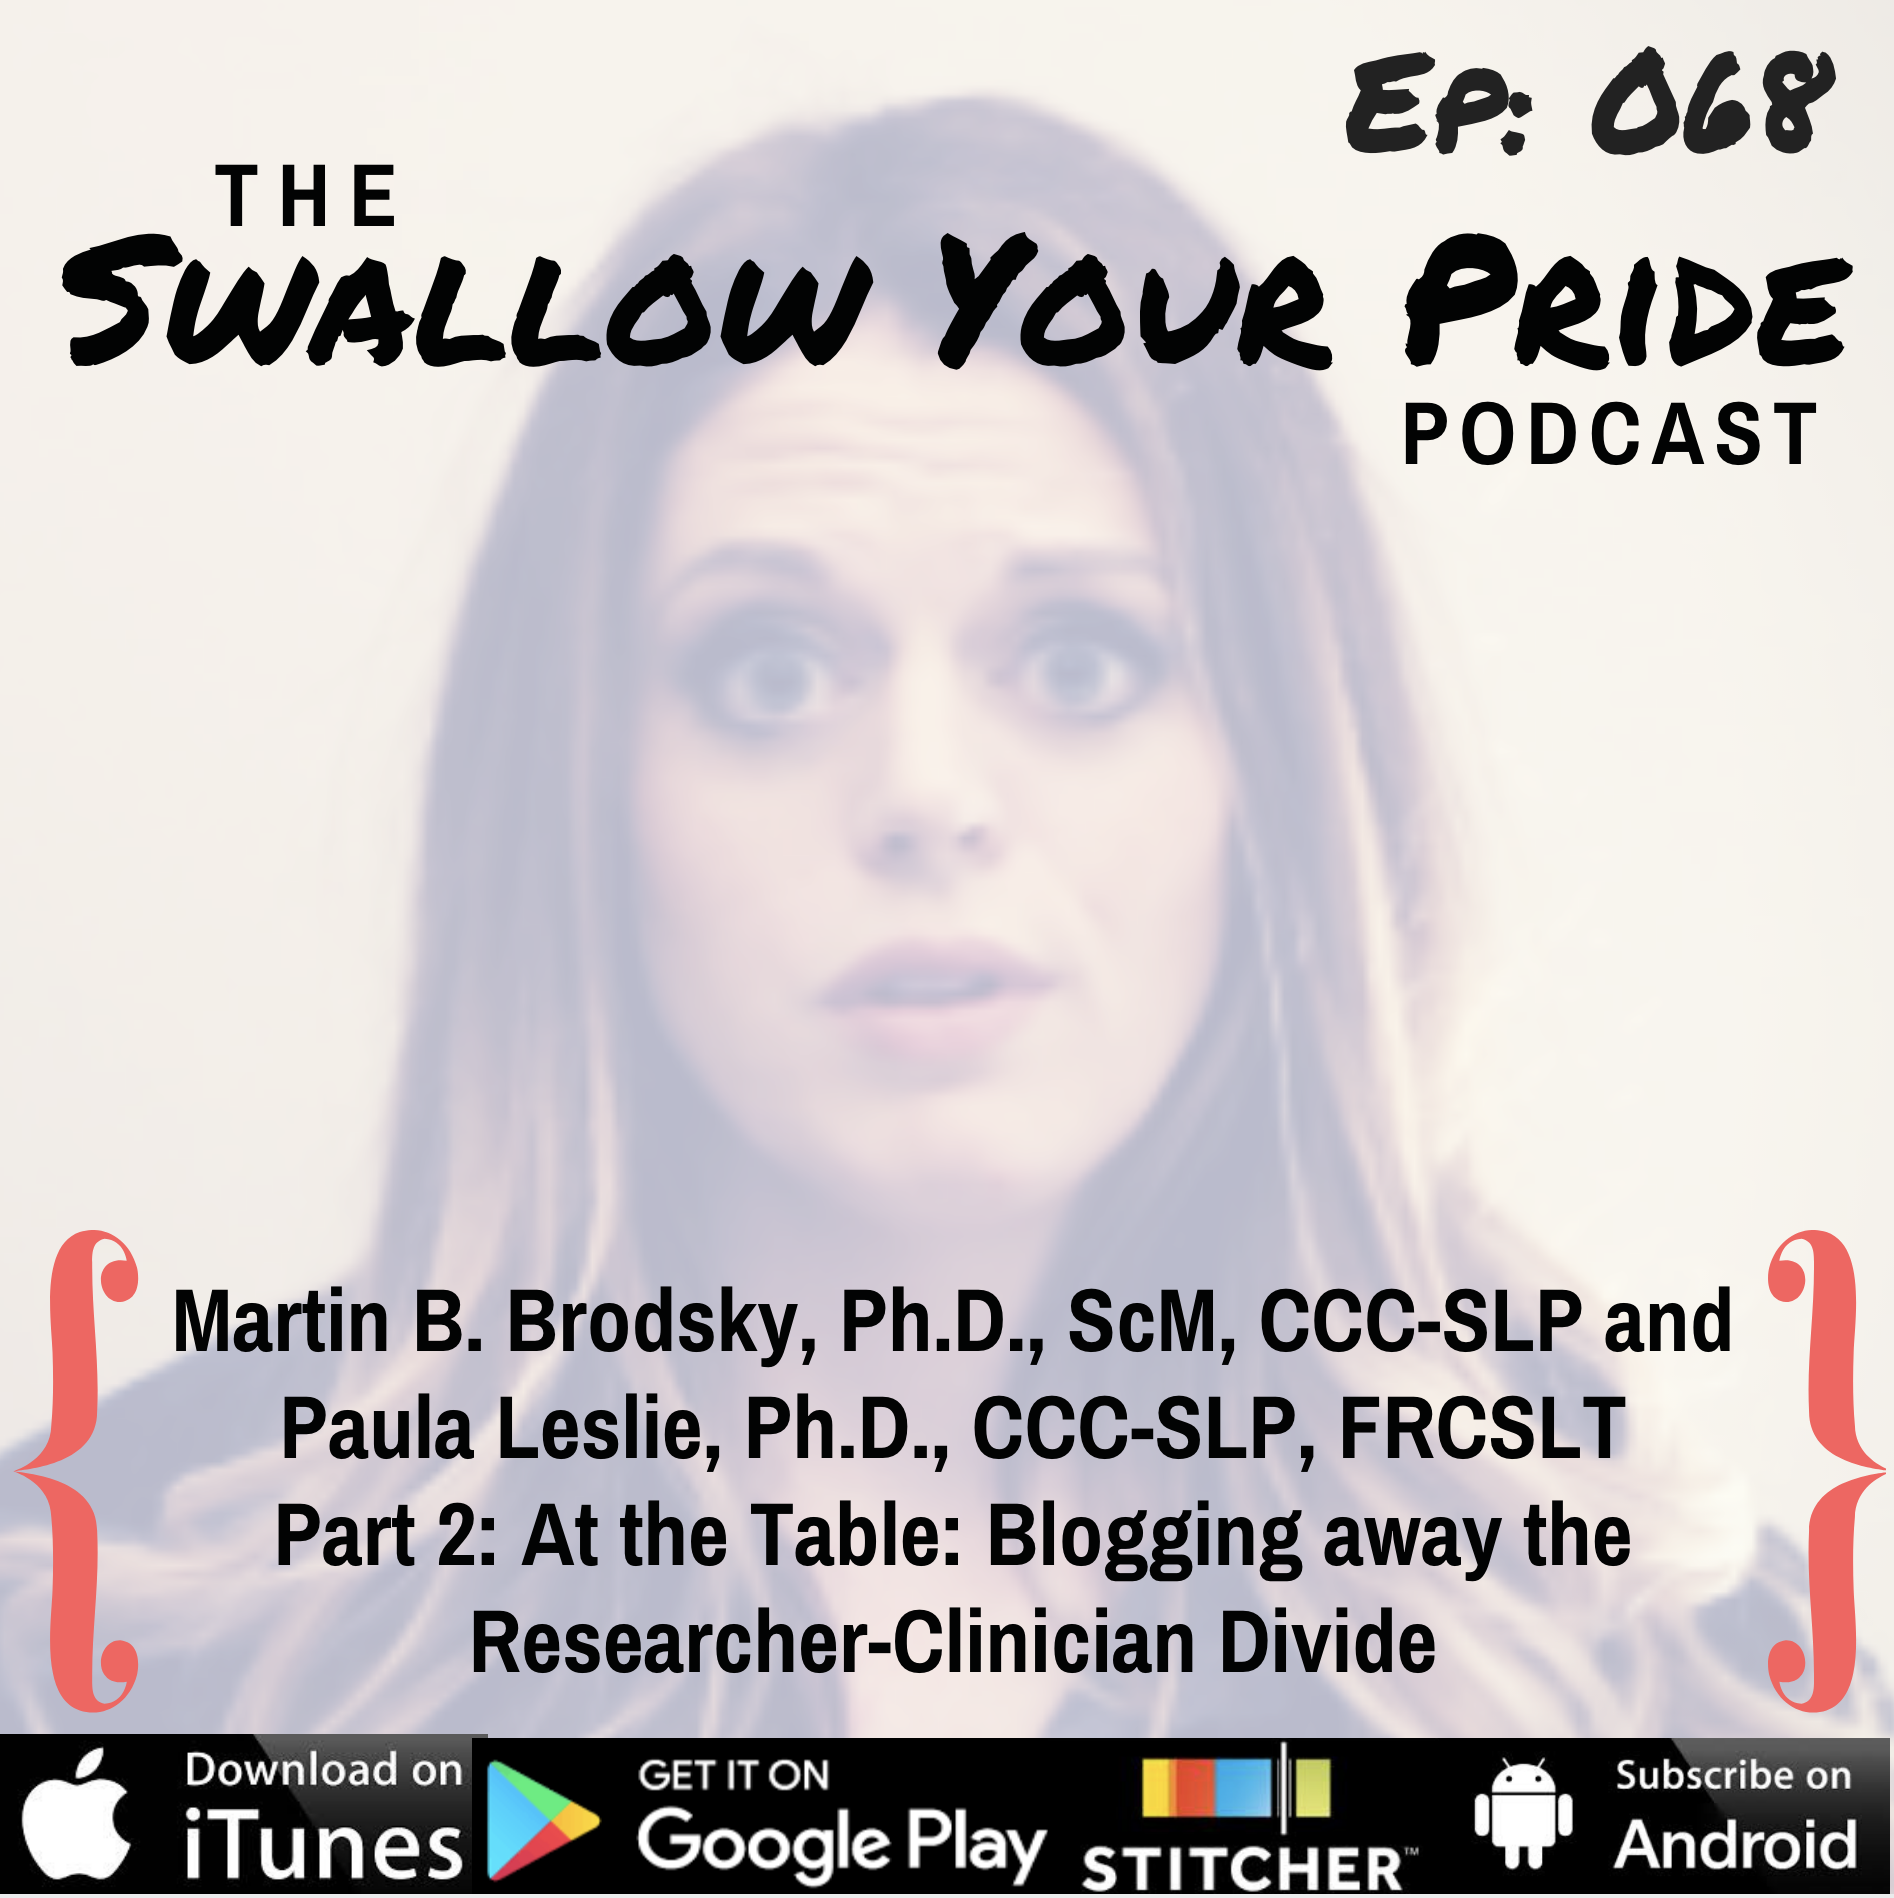 068 – Martin B. Brodsky, Ph.D., ScM, CCC-SLP and Paula Leslie, Ph.D., CCC-SLP, FRCSLT – Part 2 of At the Table: Blogging away the Researcher-Clinician Divide